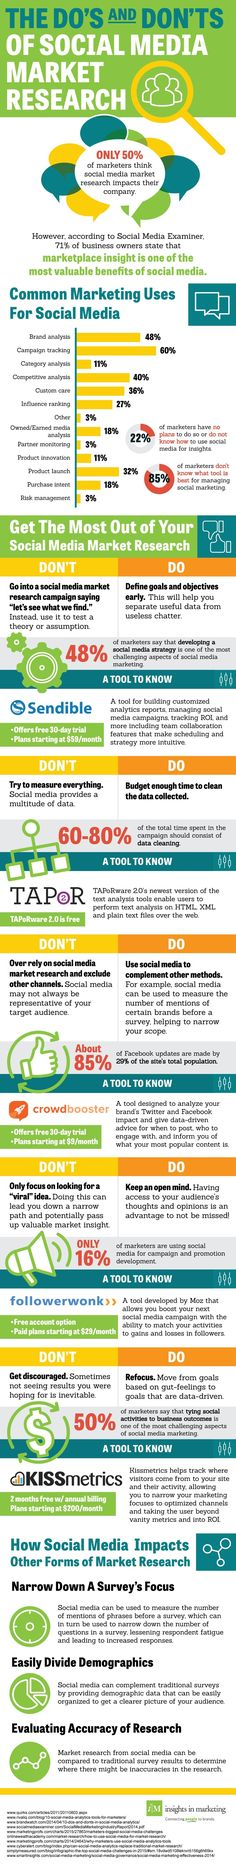 The Do's and Don'ts of Social Media Market Research #Infographic #Marketing #SocialMedia